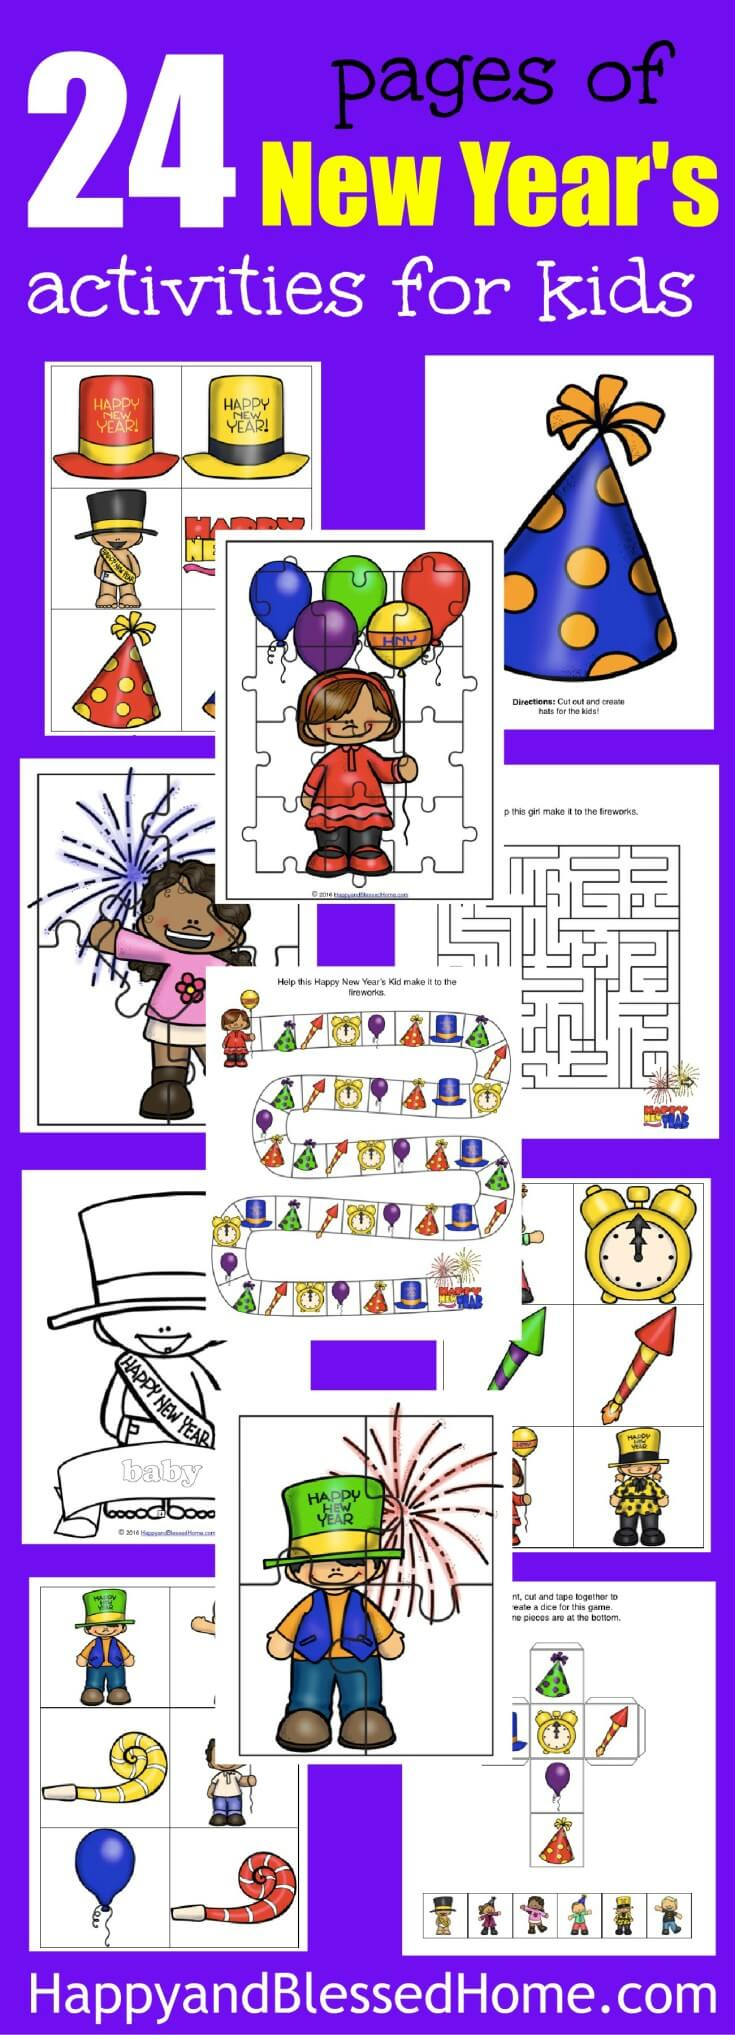 "This FREE New Year's Activity Pack for Kids includes over a dozen fun activities for kids. A great idea to DIY your own New Year's party fun! 4 Puzzle Pages, 8 Coloring Pages, 4 Hats, 1 New Year's themed Board Game with matching Dice, 1 Maze, 24 Flashcards for a Matching, and a ""Go Fish"" or memory game."